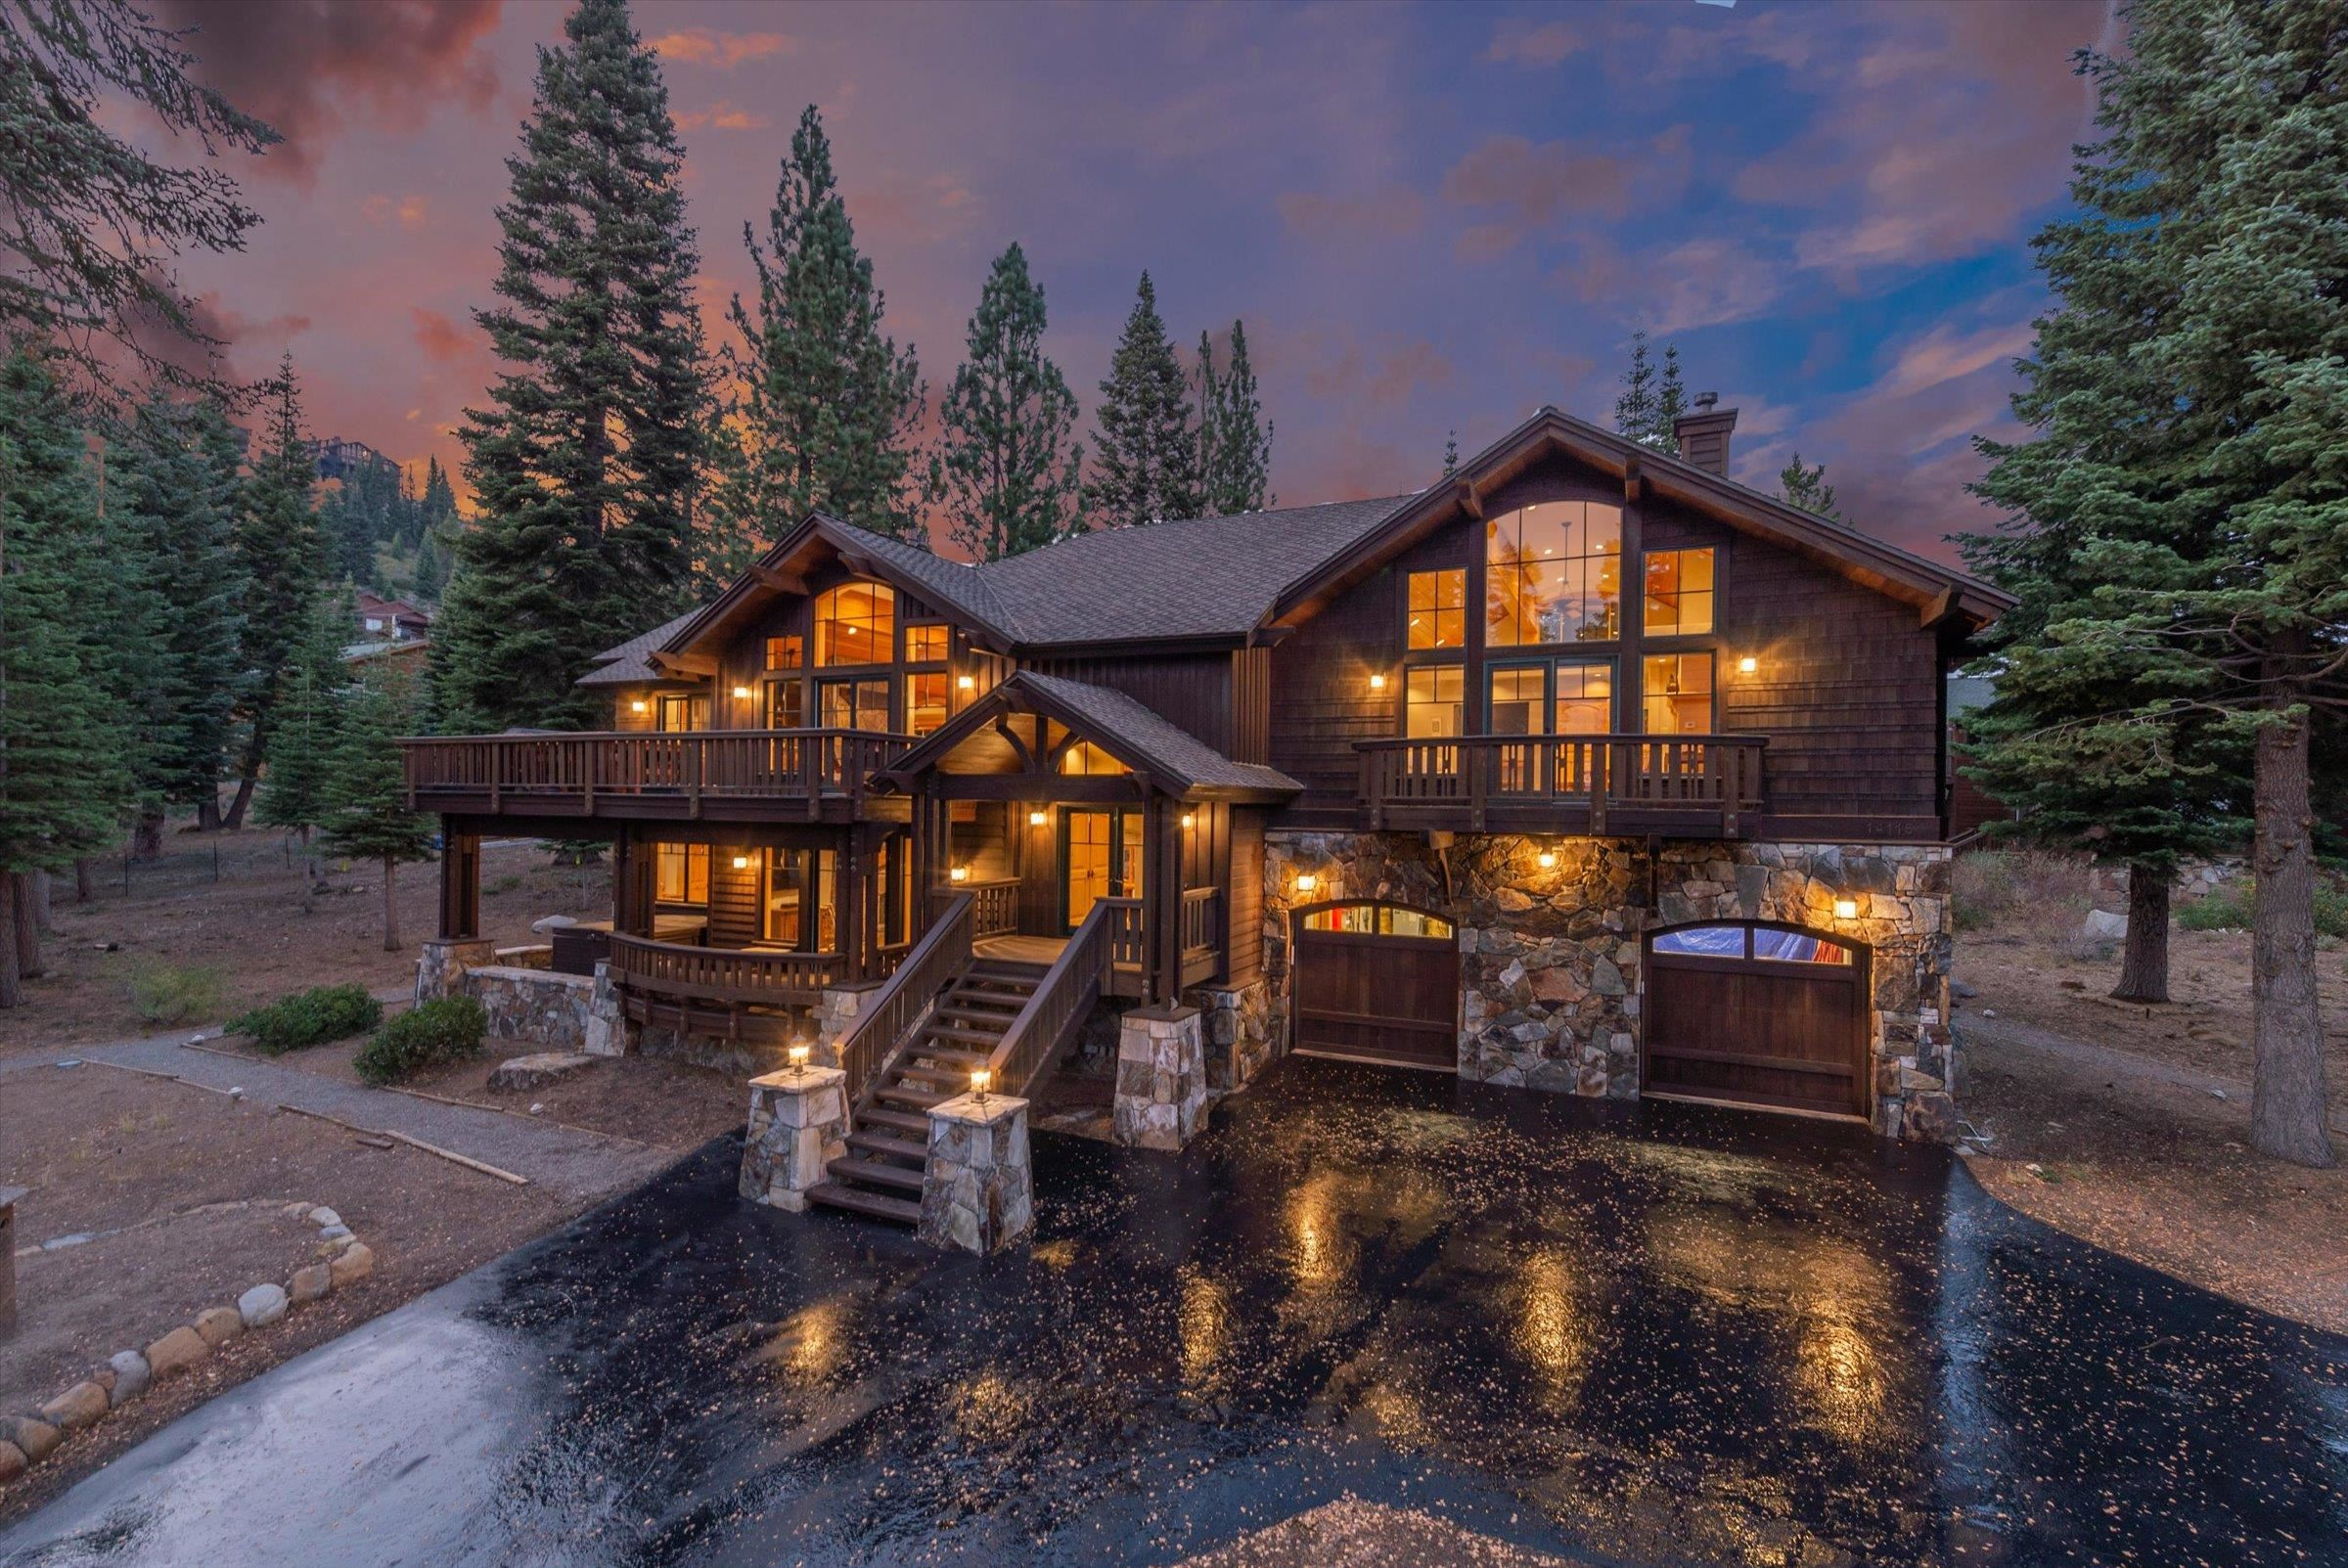 Image for 14115 Skislope Way, Truckee, CA 96161